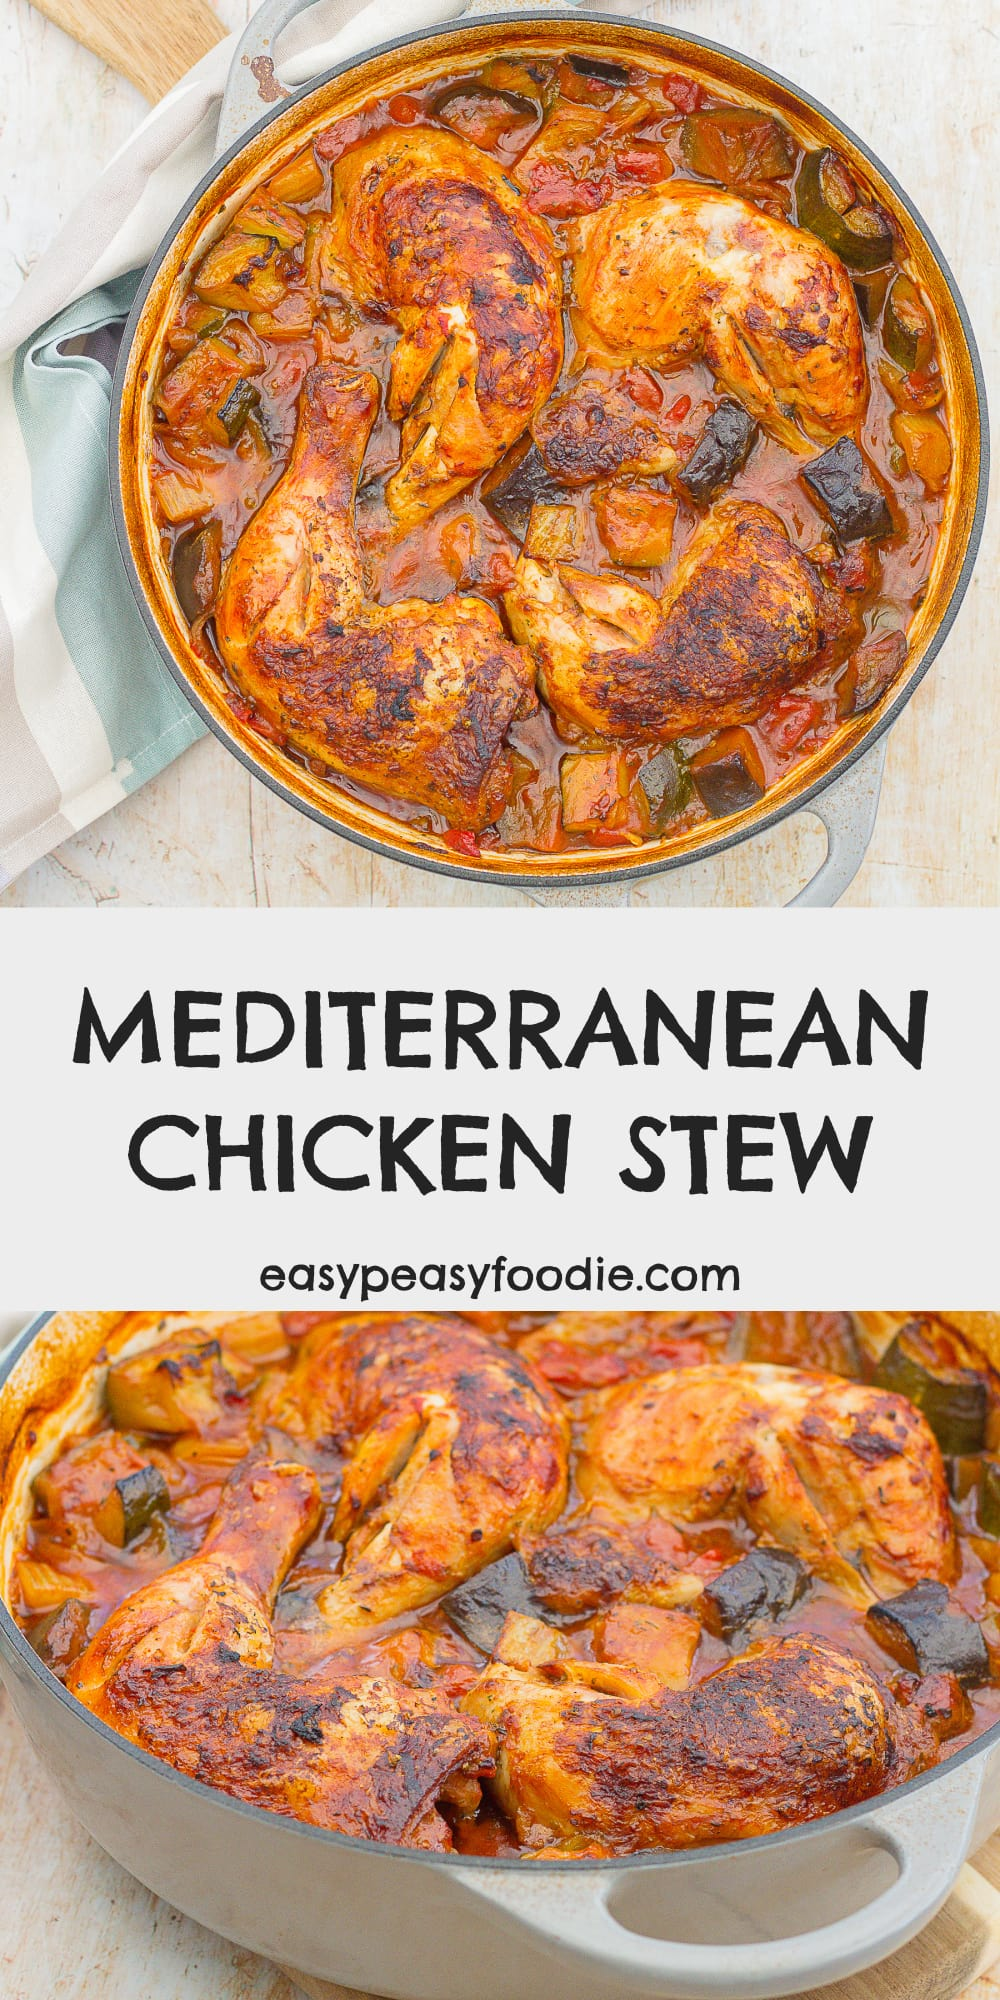 Mediterranean Chicken Stew - pinnable image for Pinterest